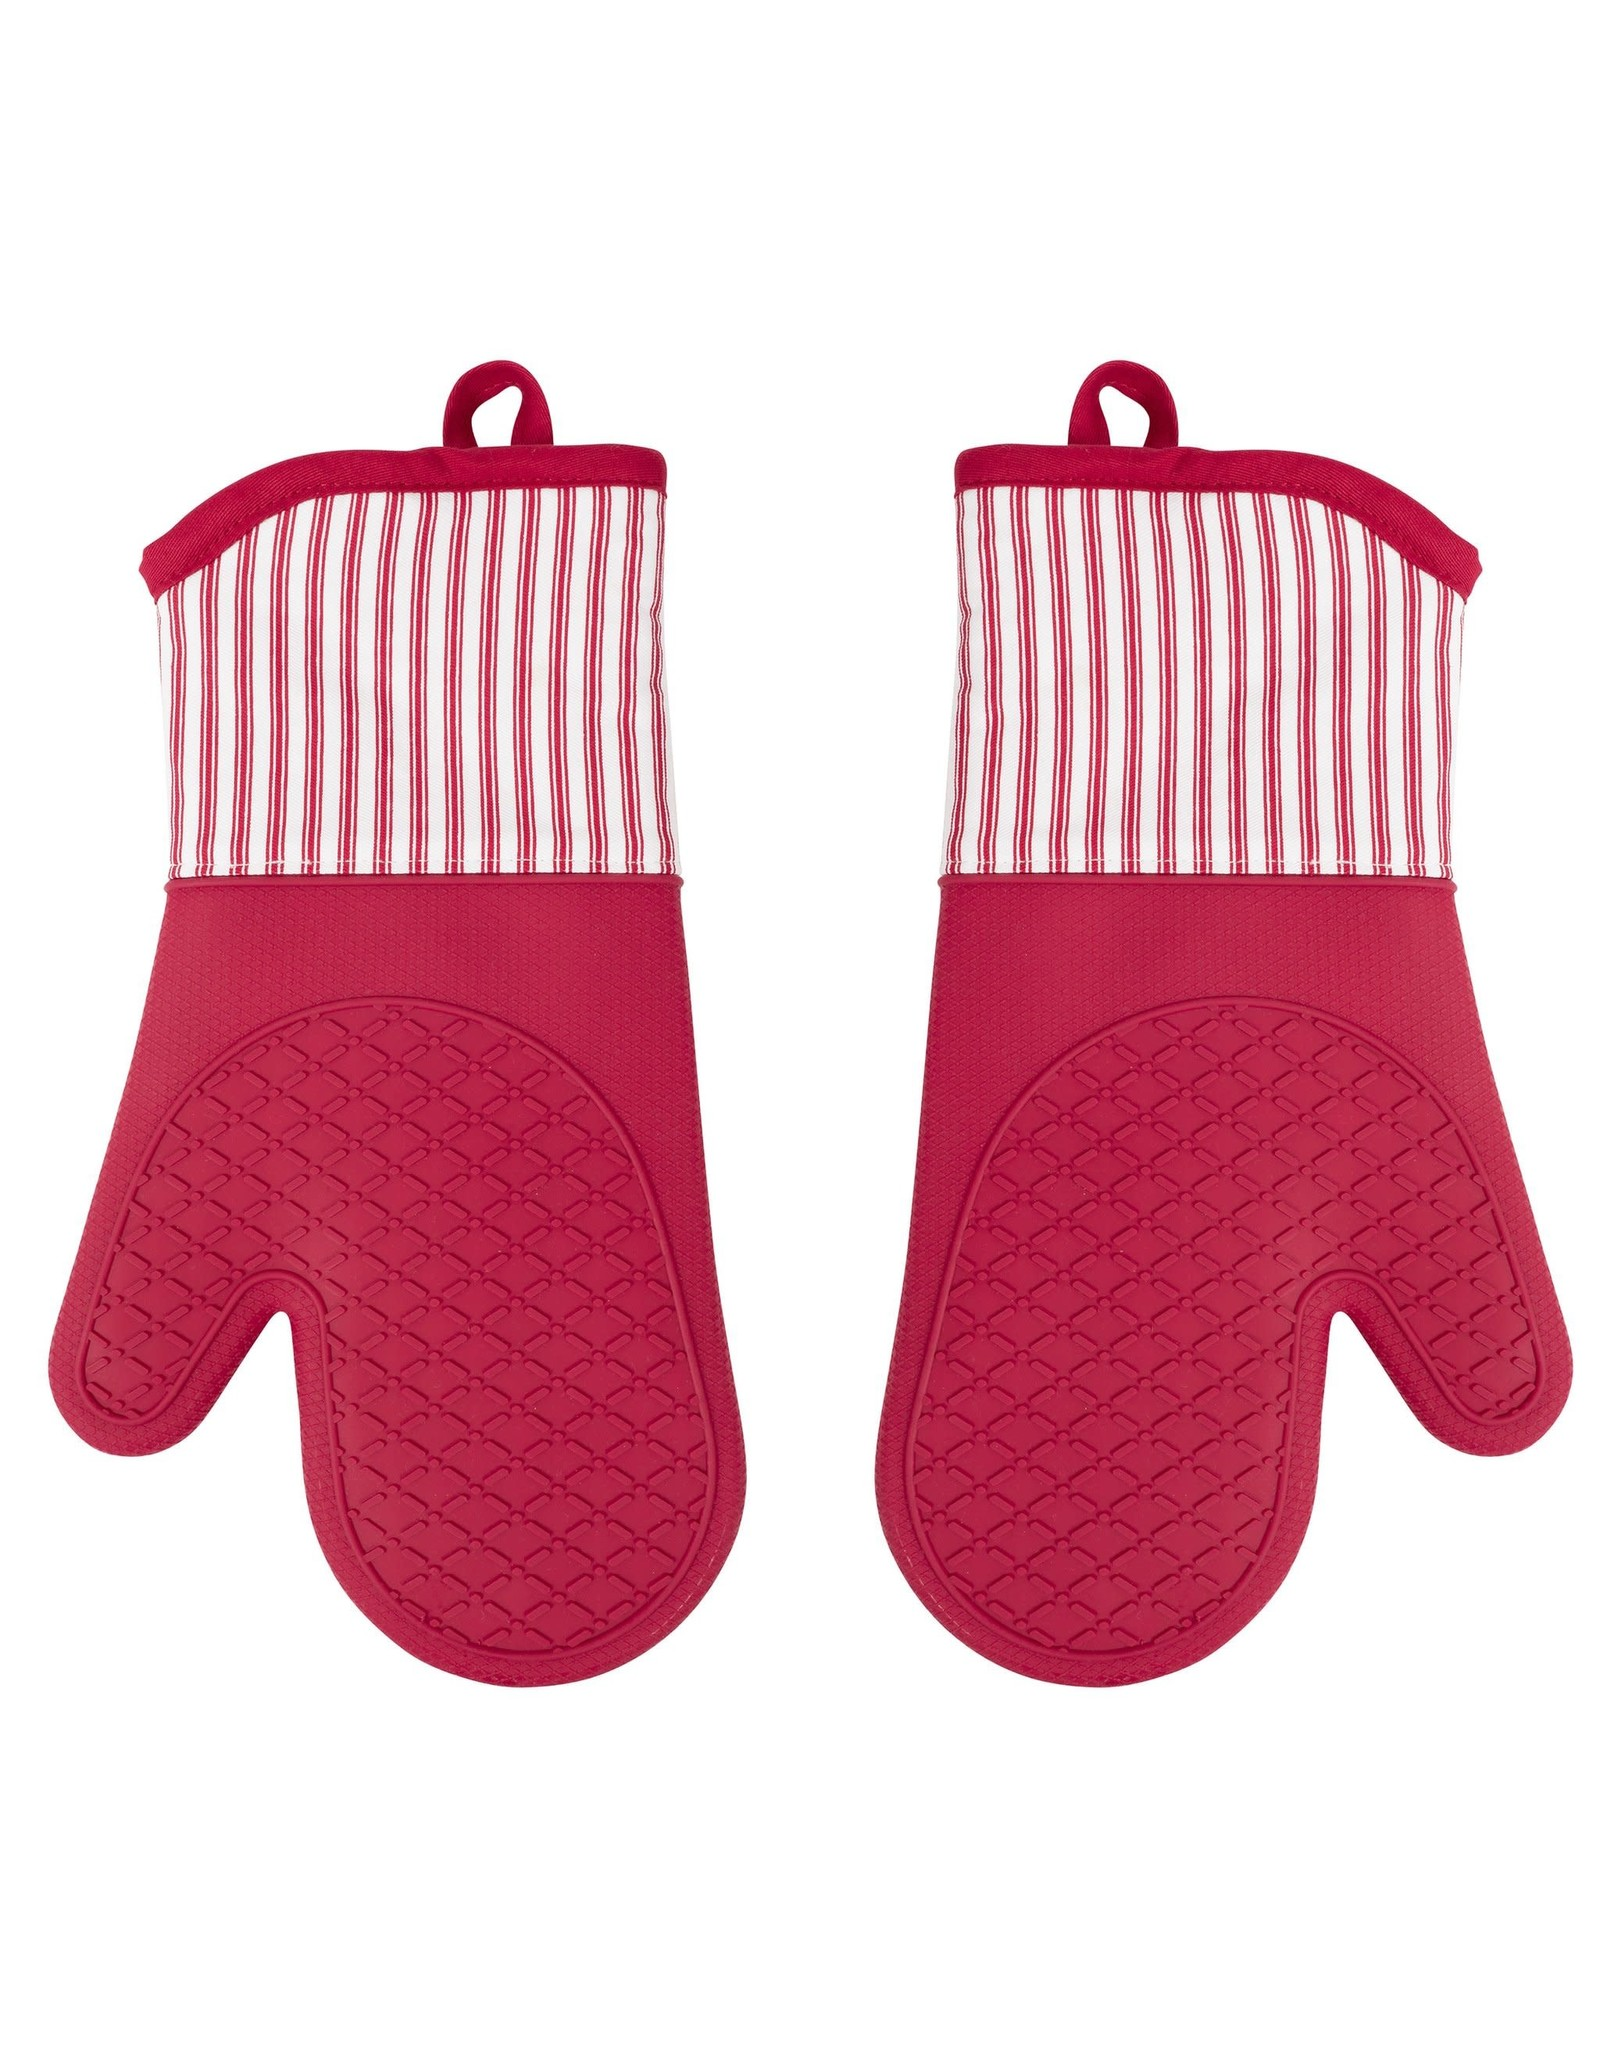 "13"" x 7"" Silicone Printed Classic Stripe Oven Mitt - Red"